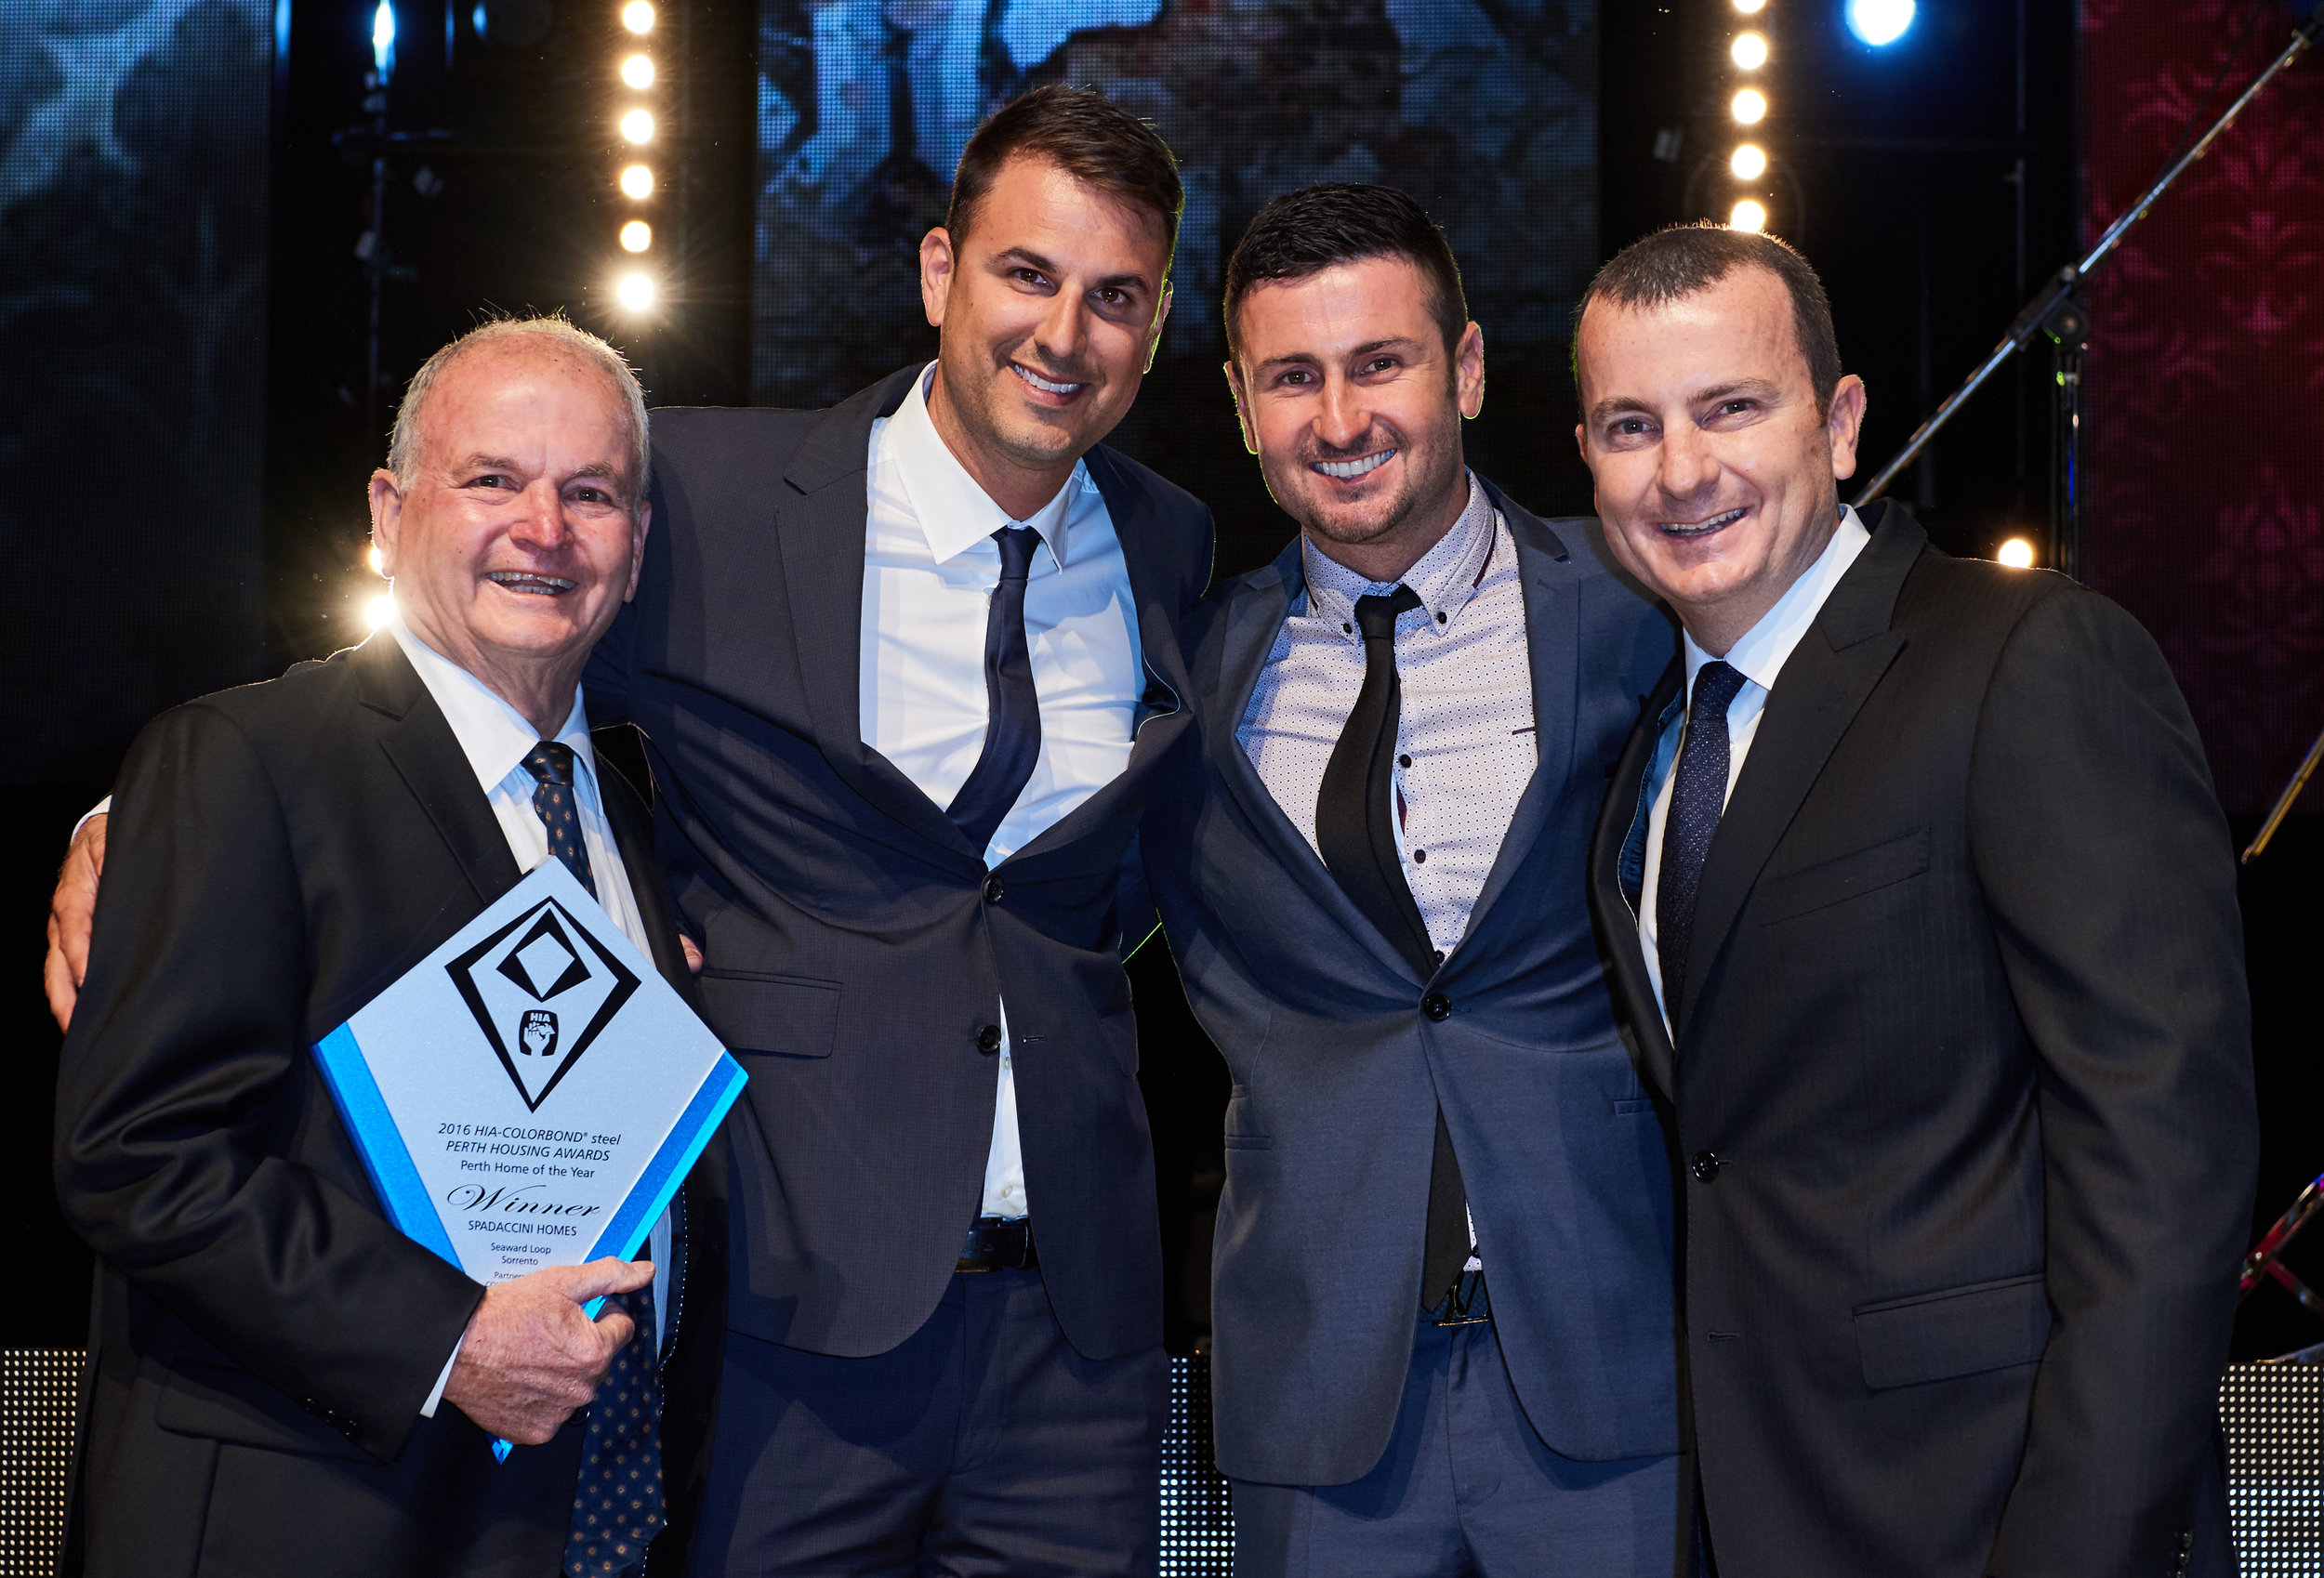 Spadaccini homes (Perth Home of the Year) HIA Awards 2016.jpg